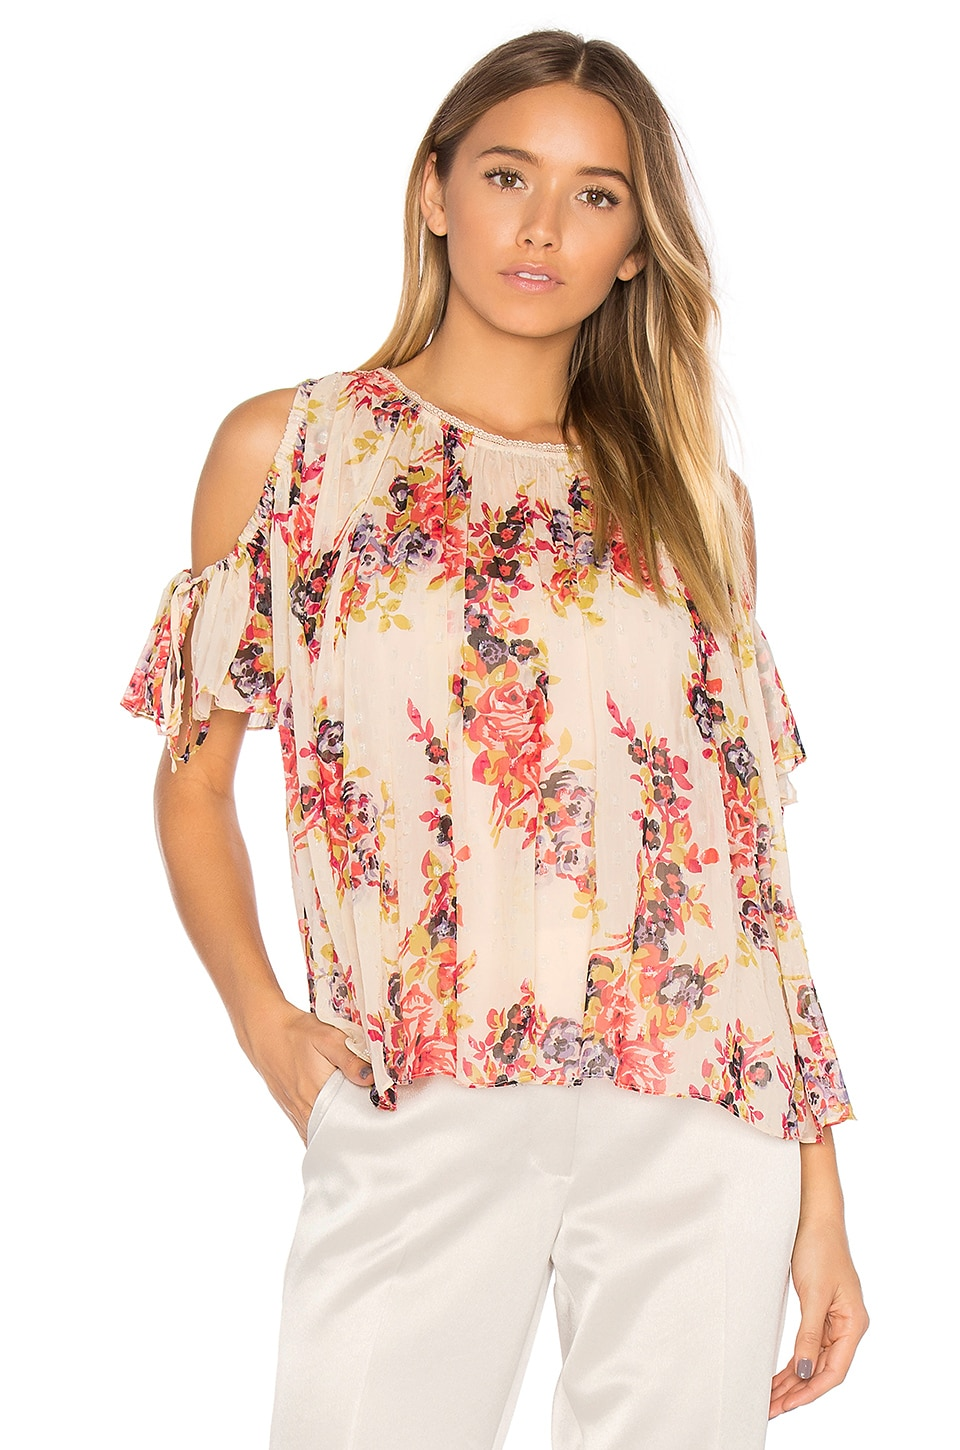 Prairie Rose Top by Needle & Thread